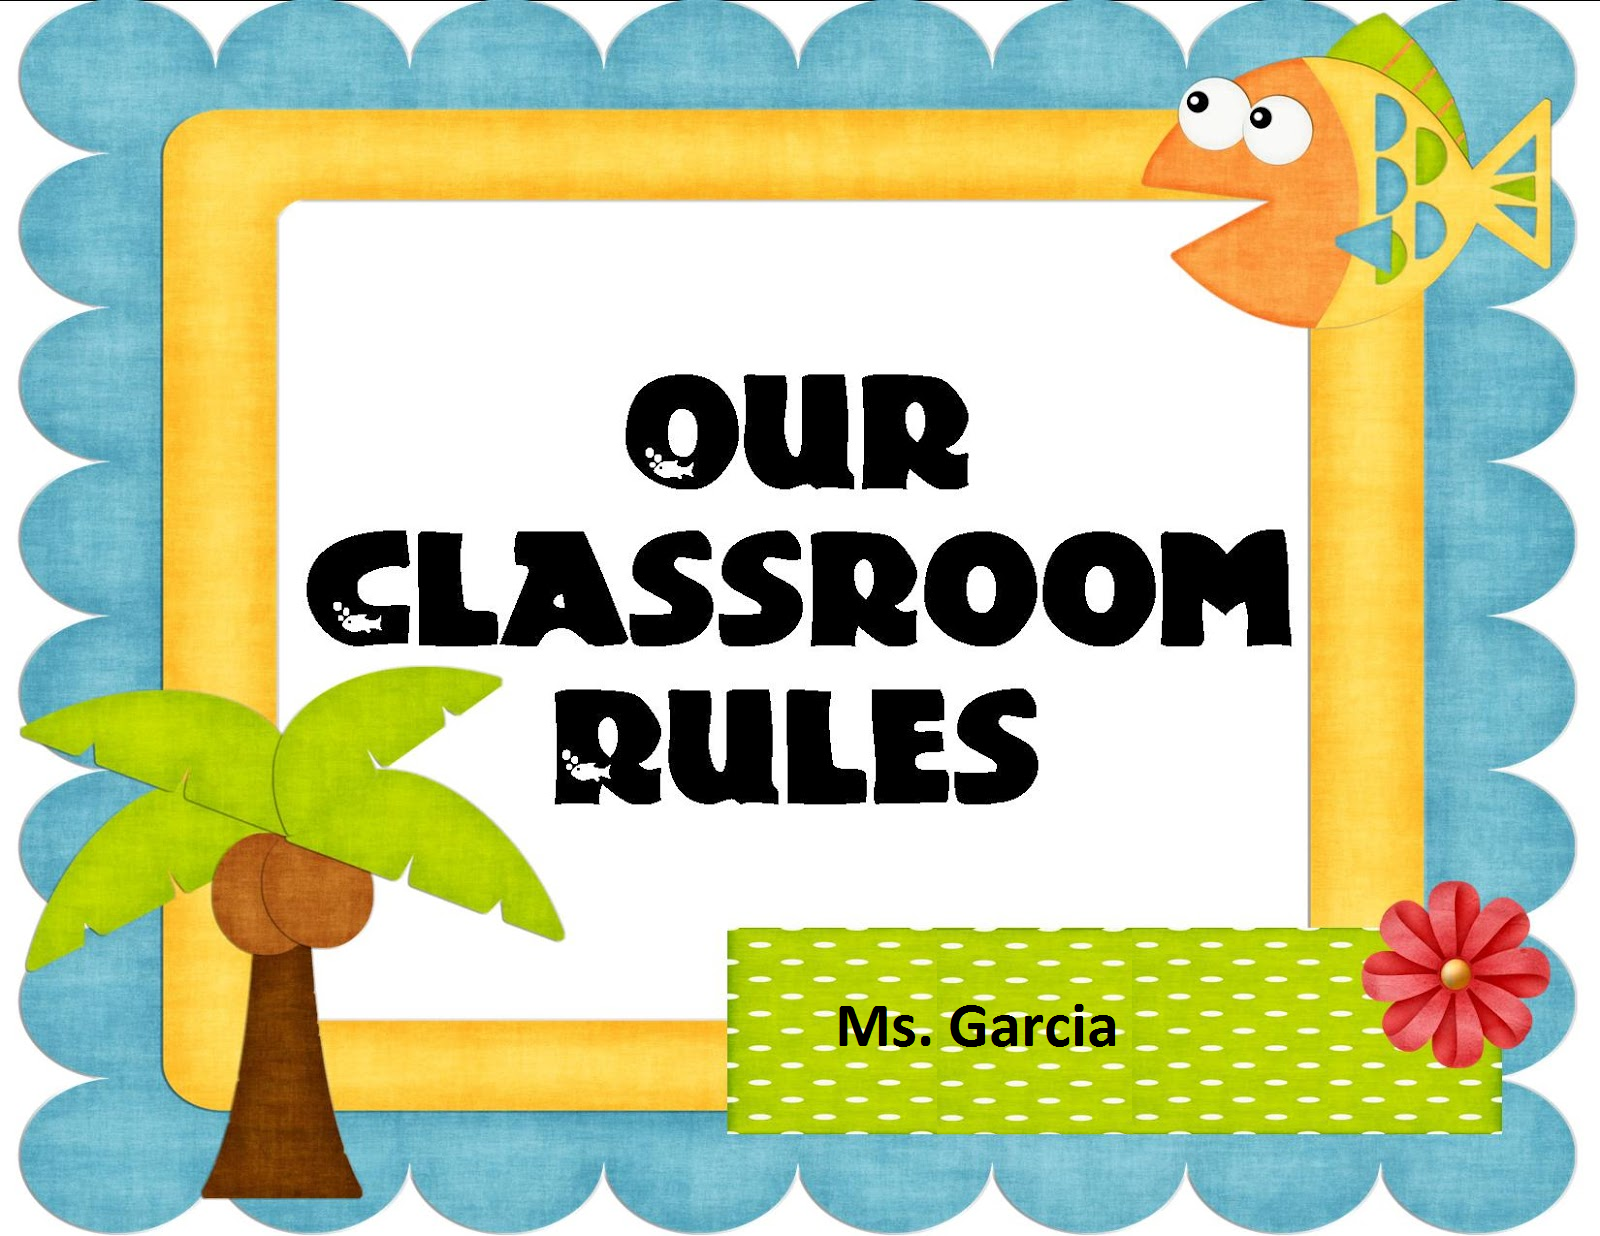 classroom rules pictures clipart panda free clipart images rh clipartpanda com high school classroom rules clipart classroom rules clipart black and white